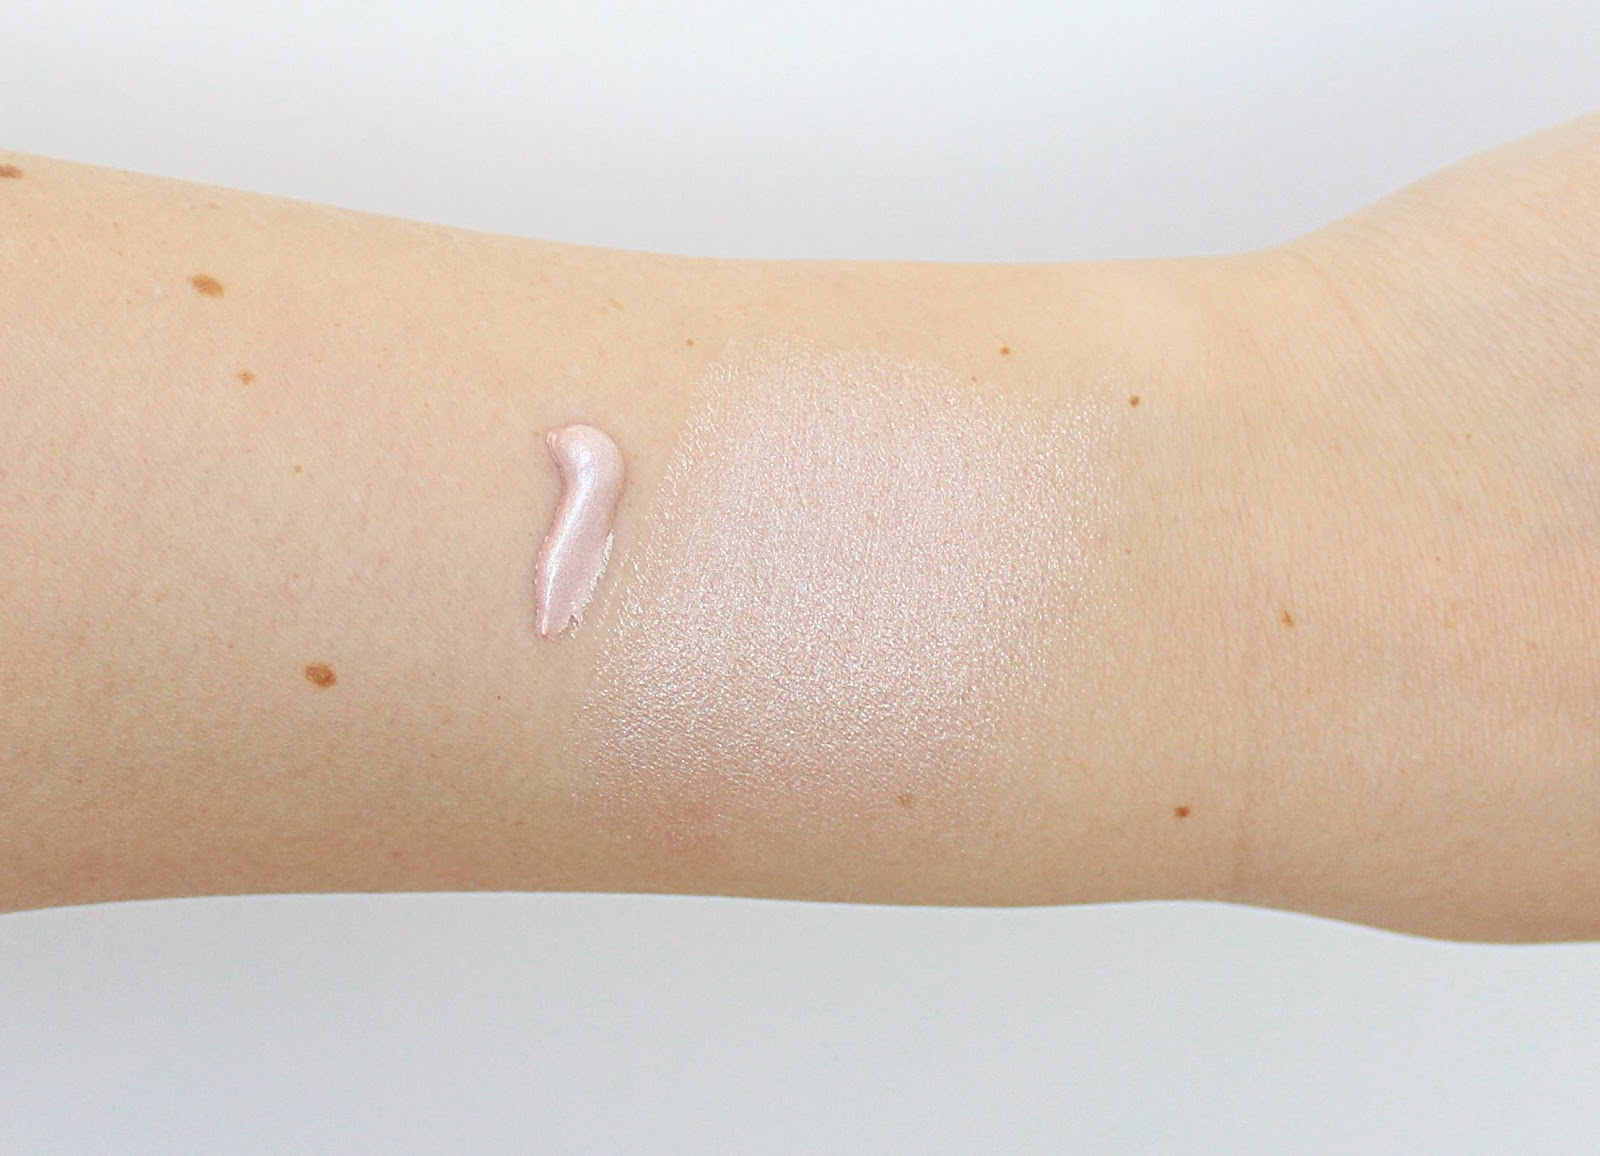 H&M Delicate Pearl Illuminiser Swatch and Review